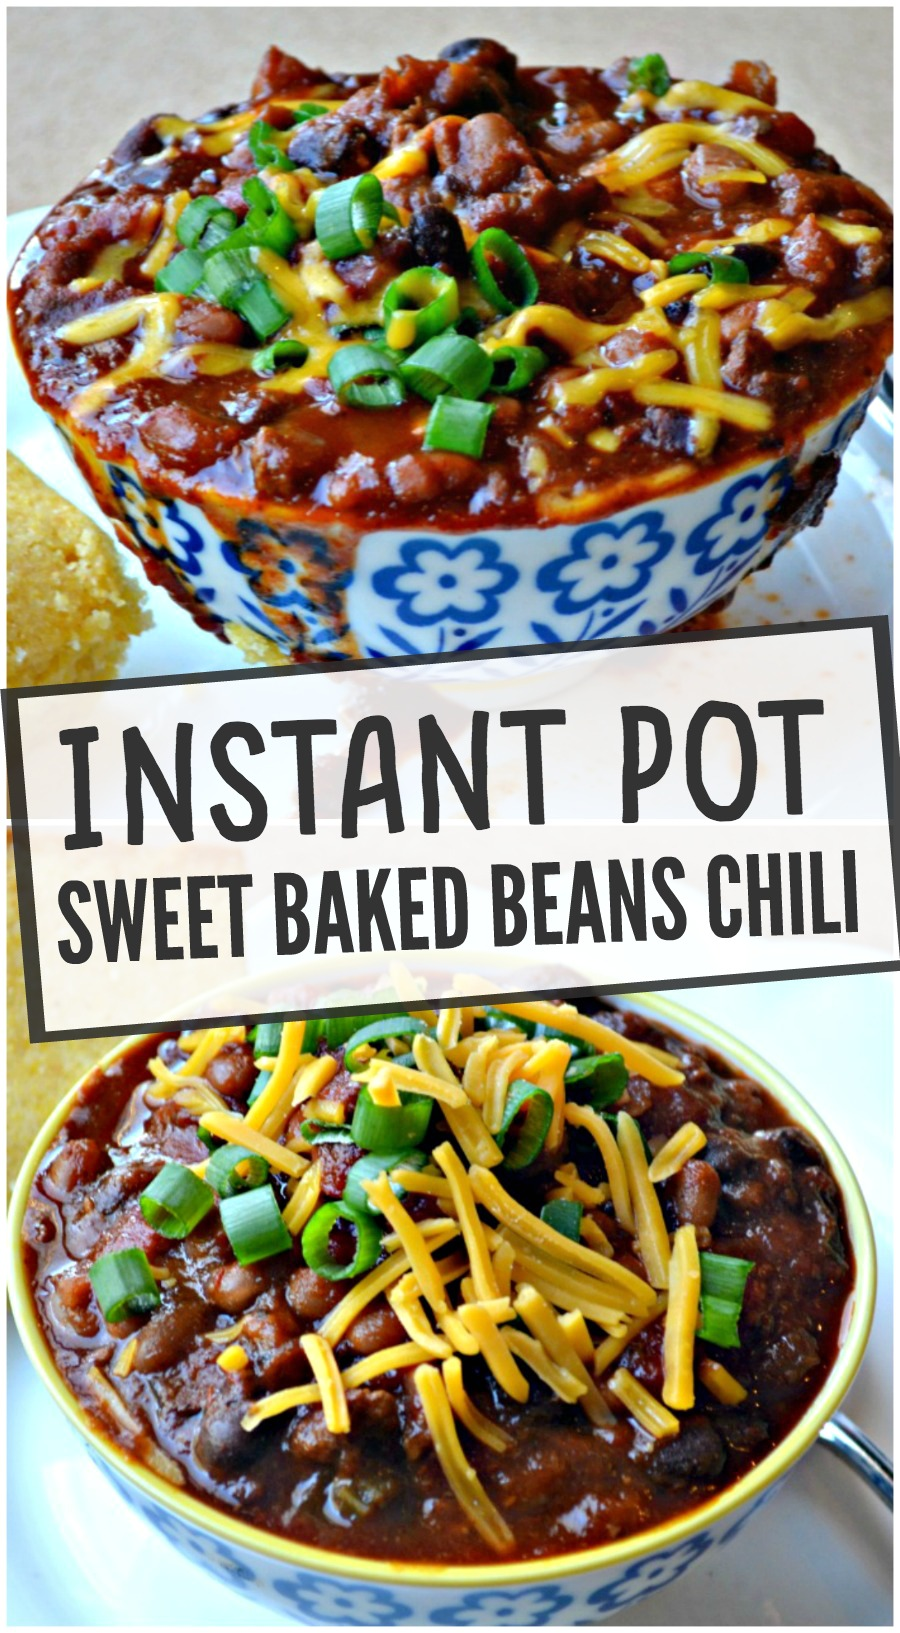 Pressure Cooker Or Slow Cooker Sweet Baked Beans Chili Make The Best Of Everything